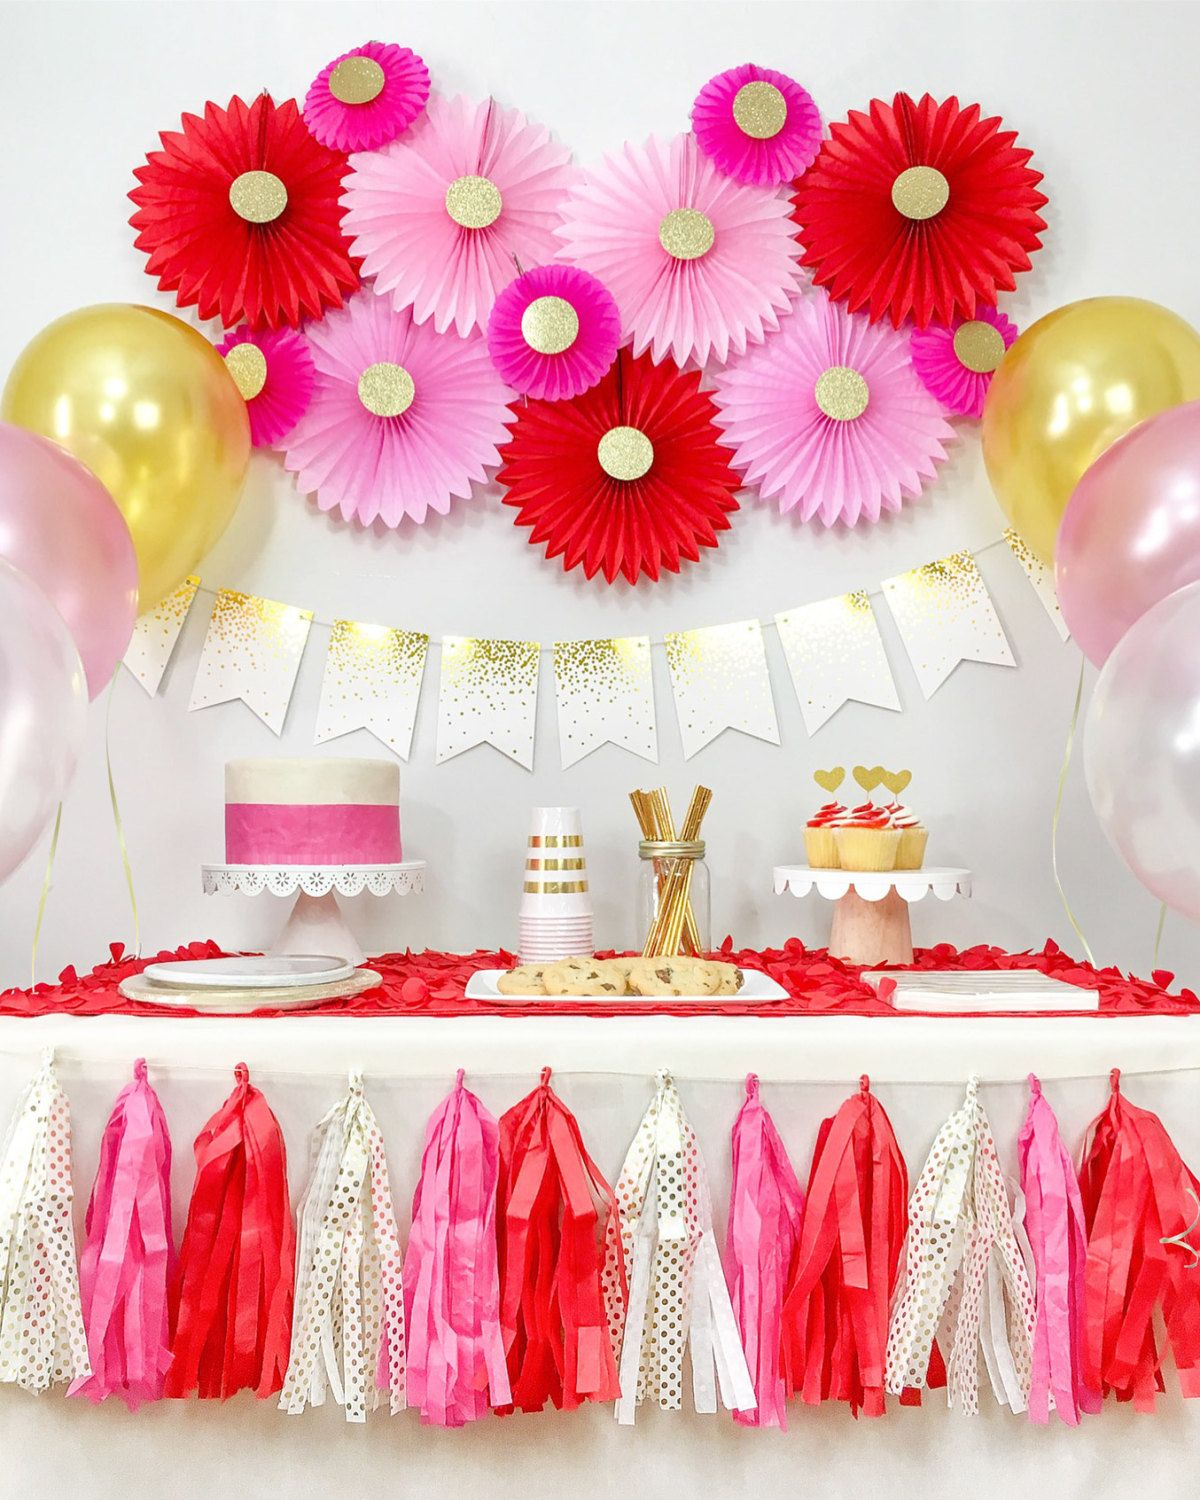 Birthday Party Decorations, Bridal Shower, Anniversary Decorations ...